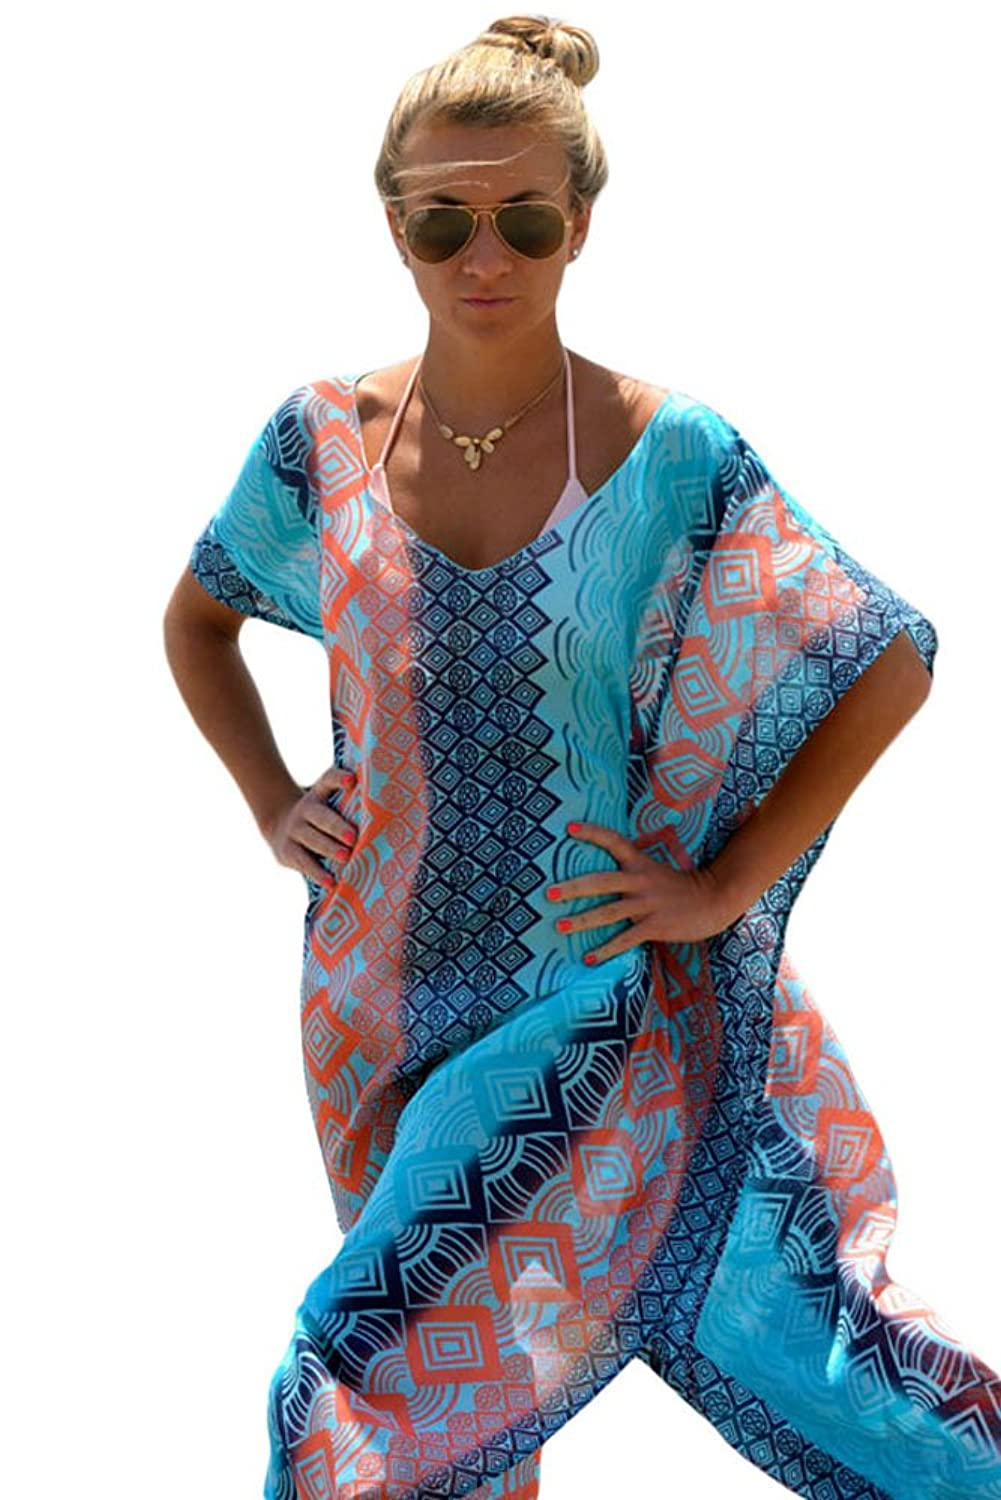 NICE BUY Damen Strand Kaftan Graphic Miami Poncho Beachwear Cover up Bademode